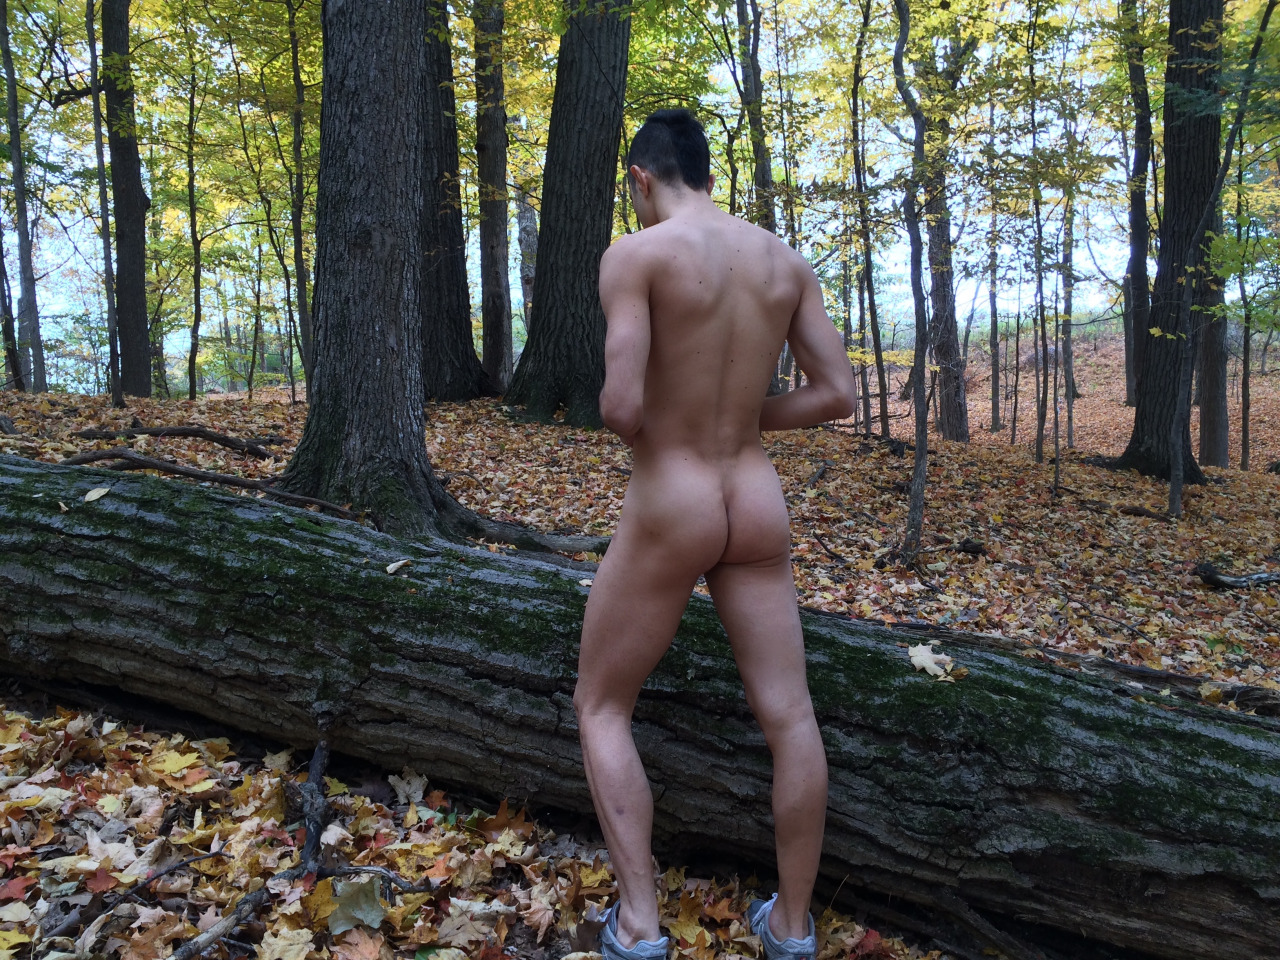 Nude Yoga Men Video